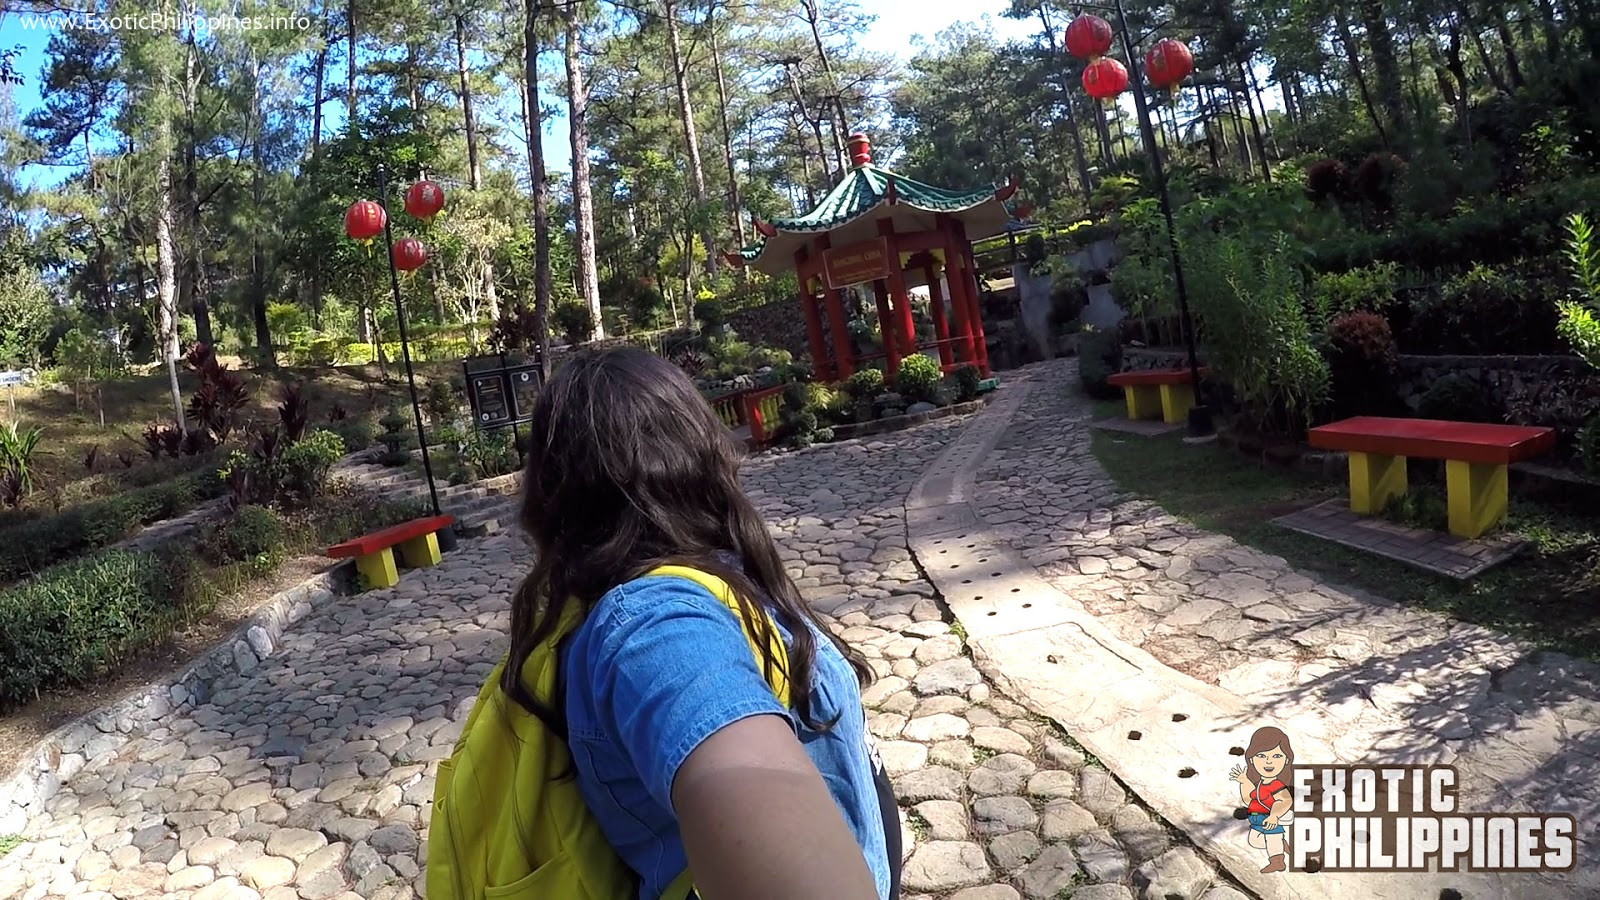 Around the World with Botanical Garden in Baguio City Exotic Philippines Travel Blog Blogger Vlog